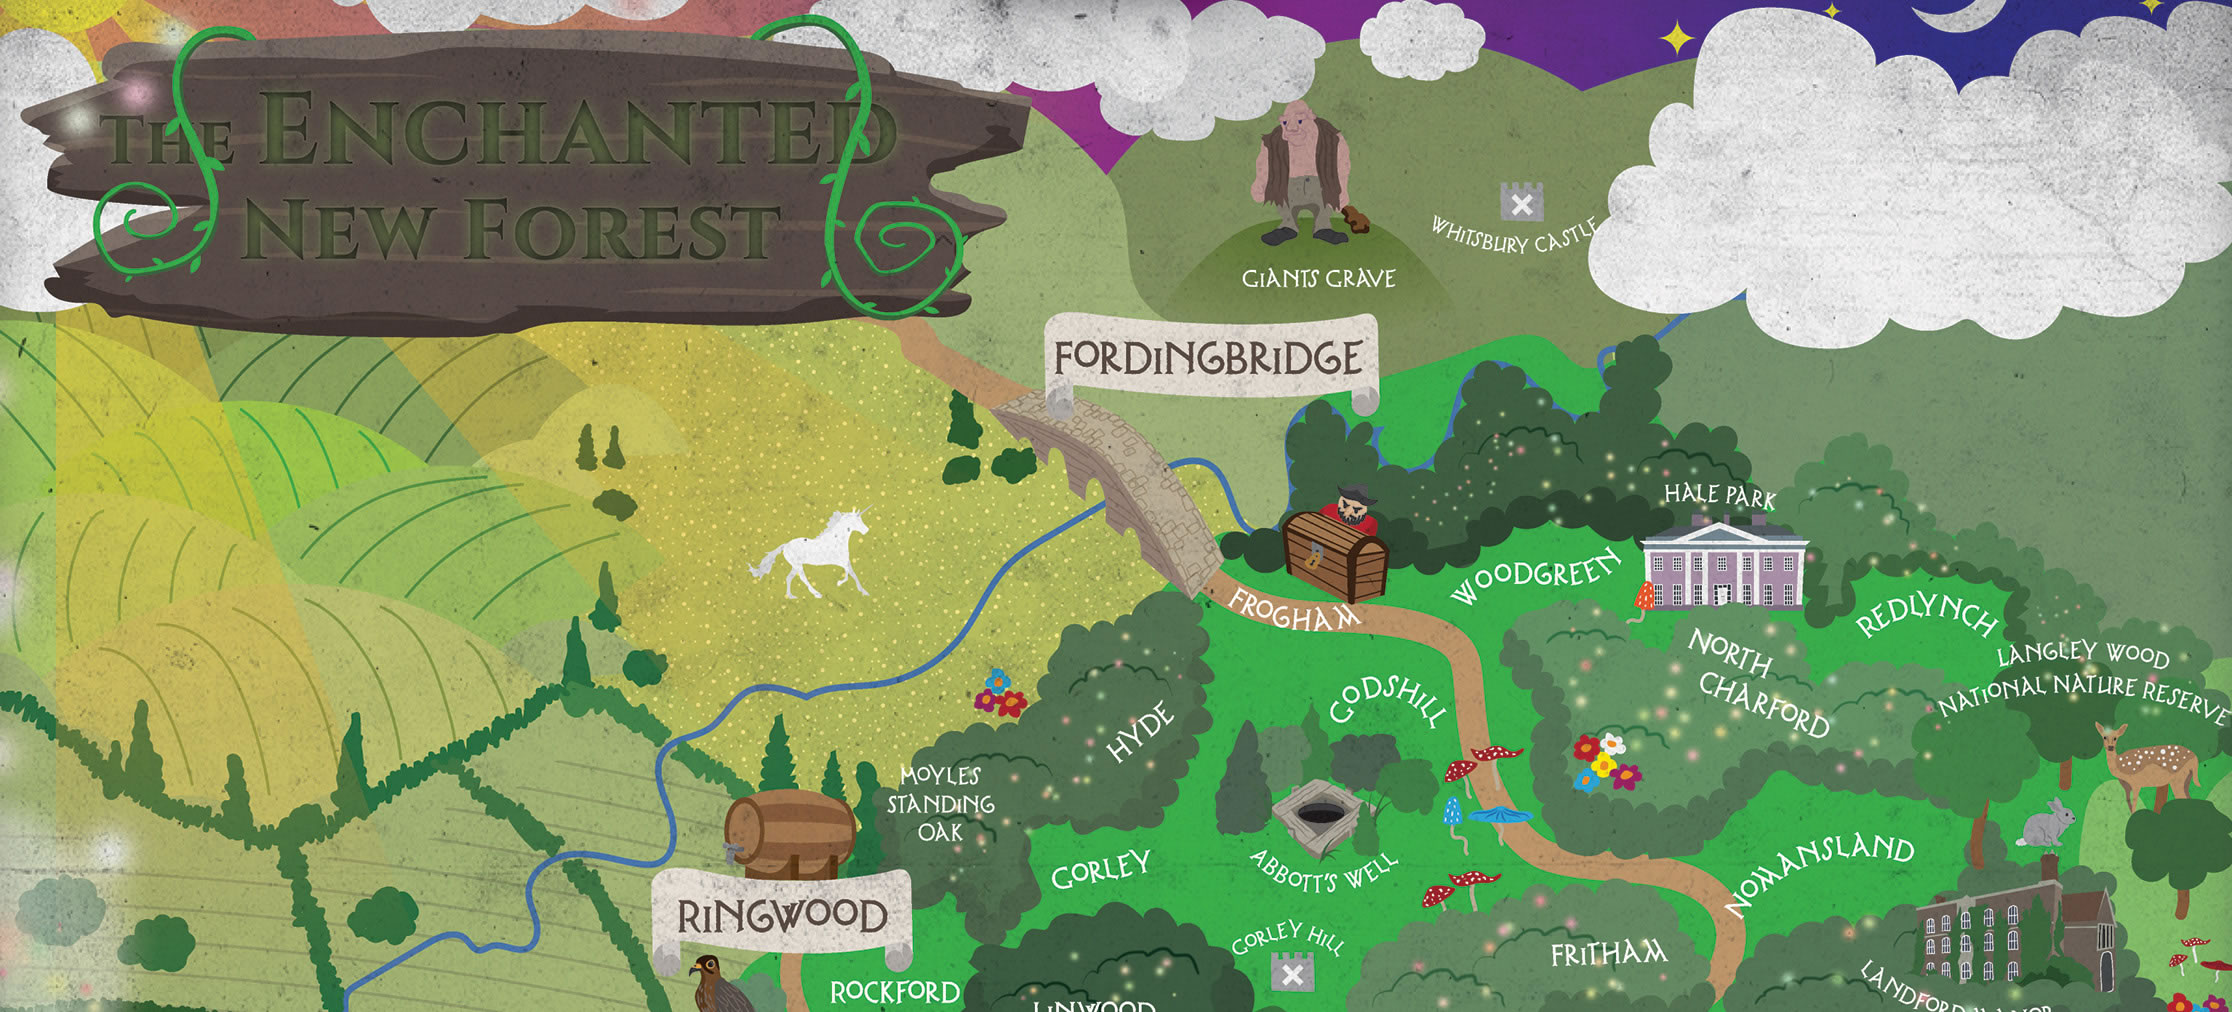 The Enchanted New Forest A Magical Map By Jurys Inns